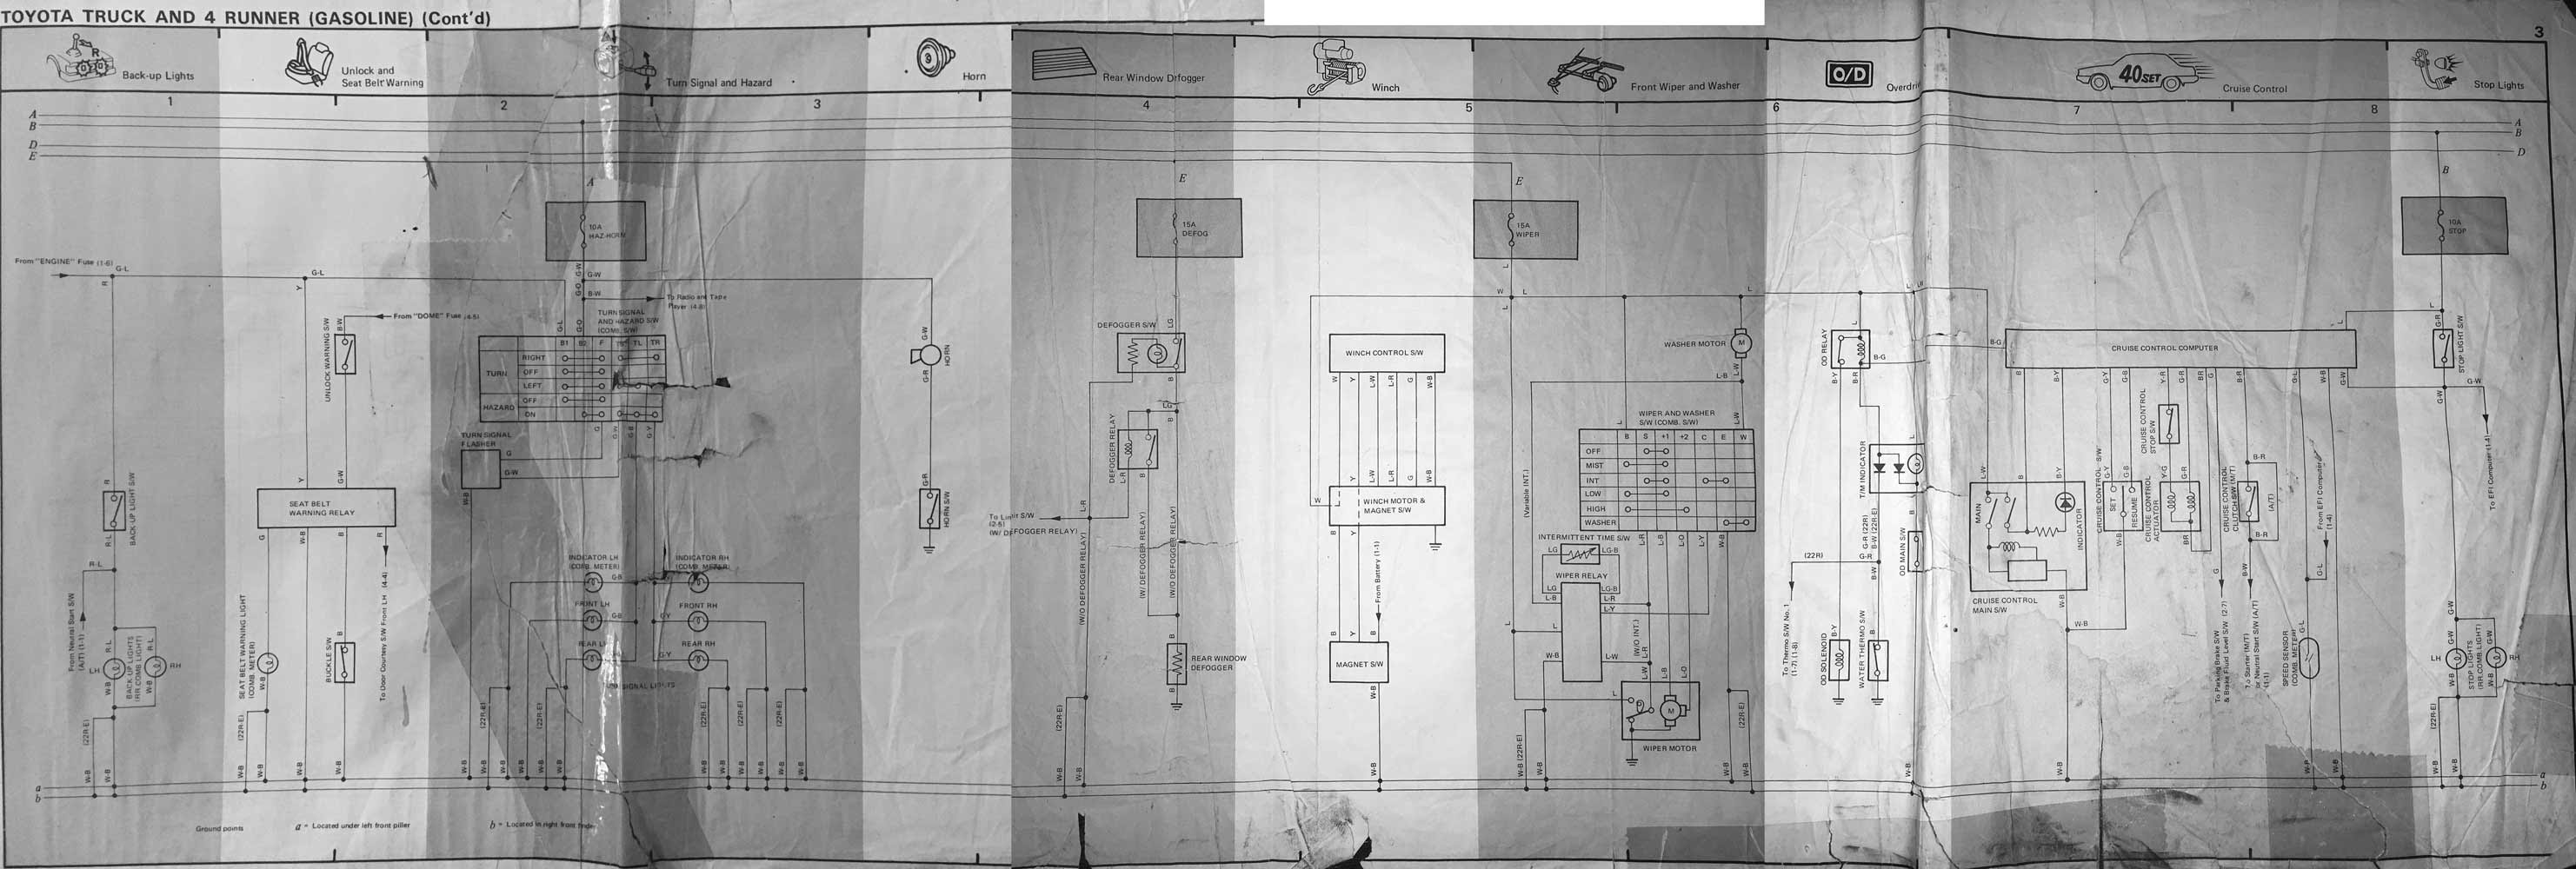 1985 Toyota Wiring Diagram Wiring Diagram Window B Window B Zaafran It